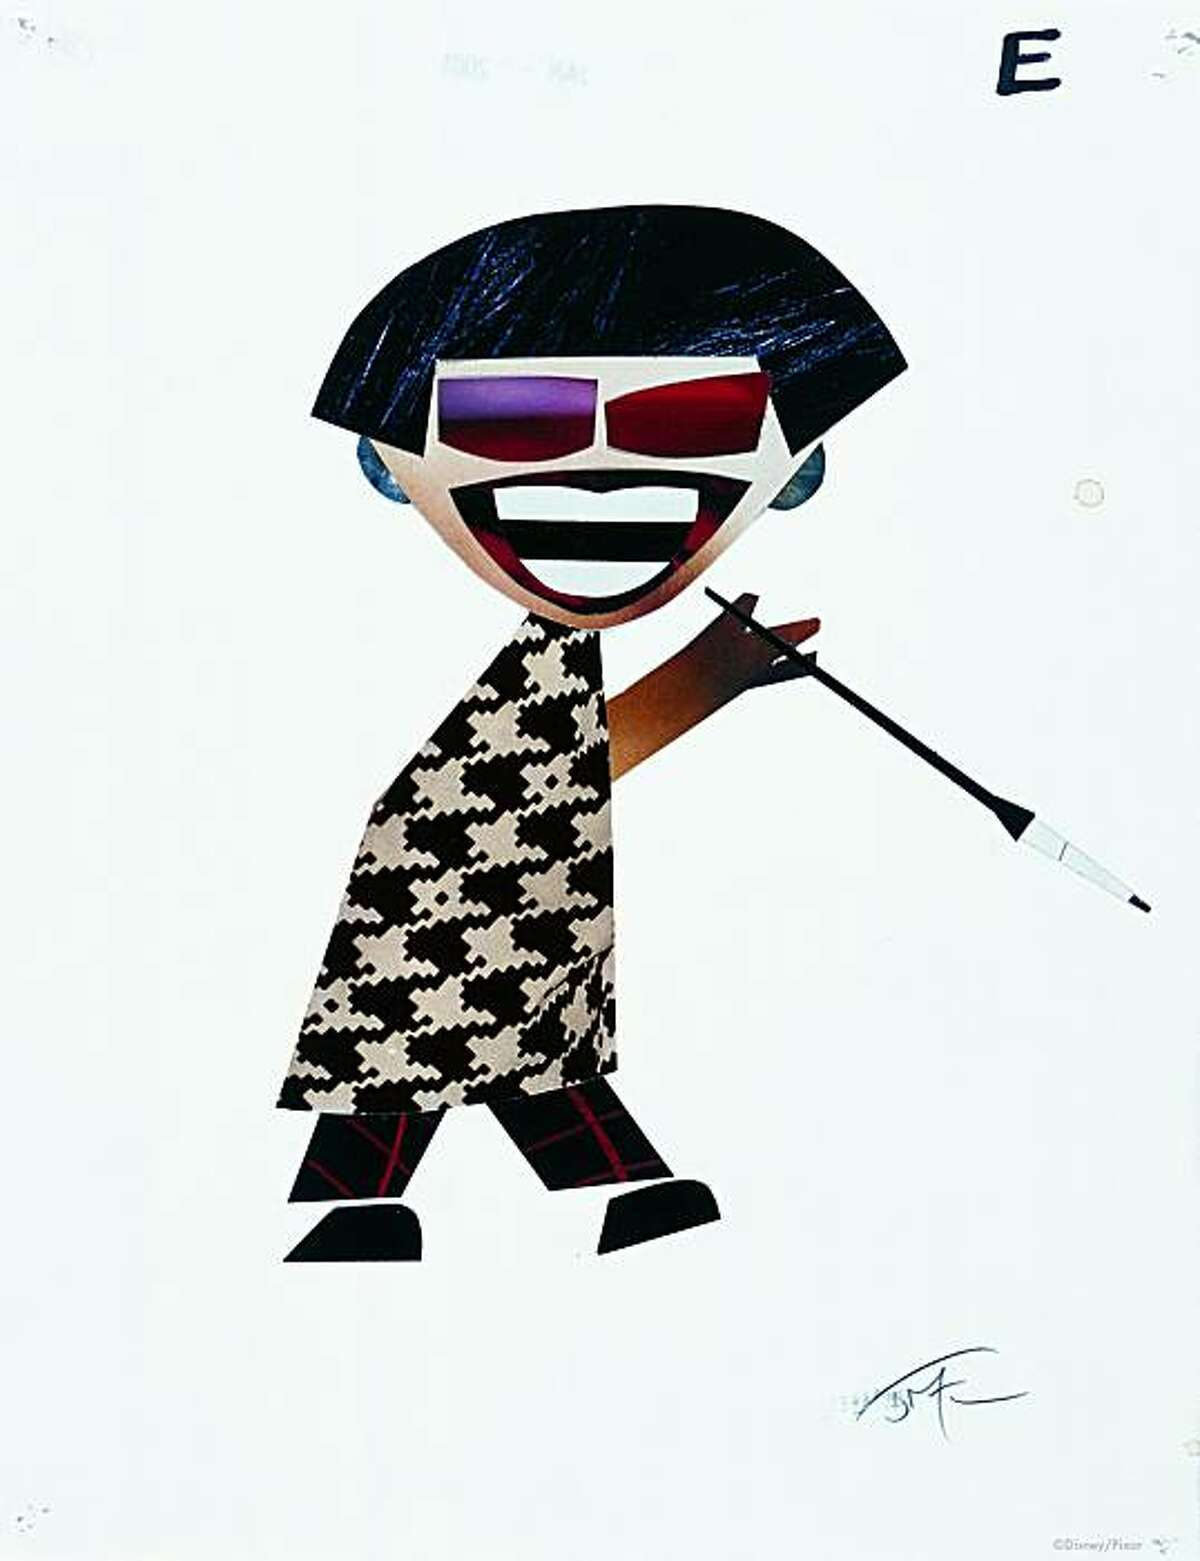 PXR1009 Teddy Newton, Edna Mode (aka ?E?), The Incredibles, 2004. Collage. ?Disney/Pixar.